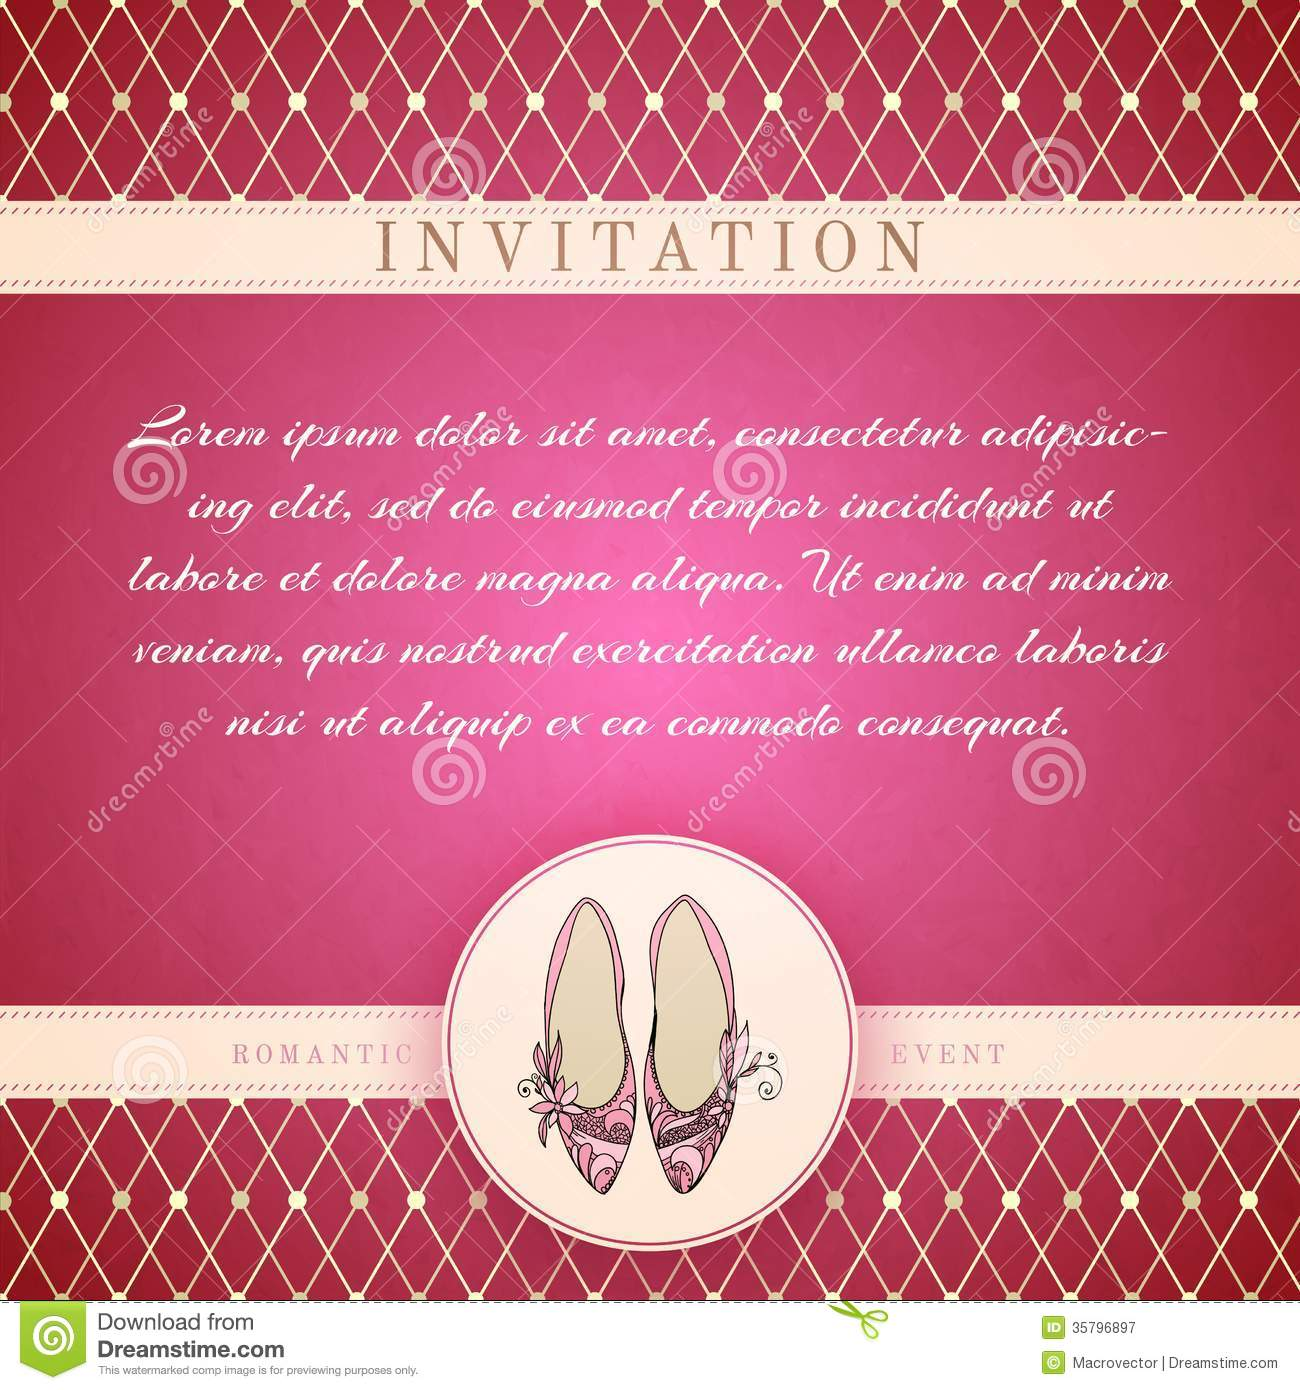 Cinderella princess invitation template royalty free stock for Princess trust business plan template